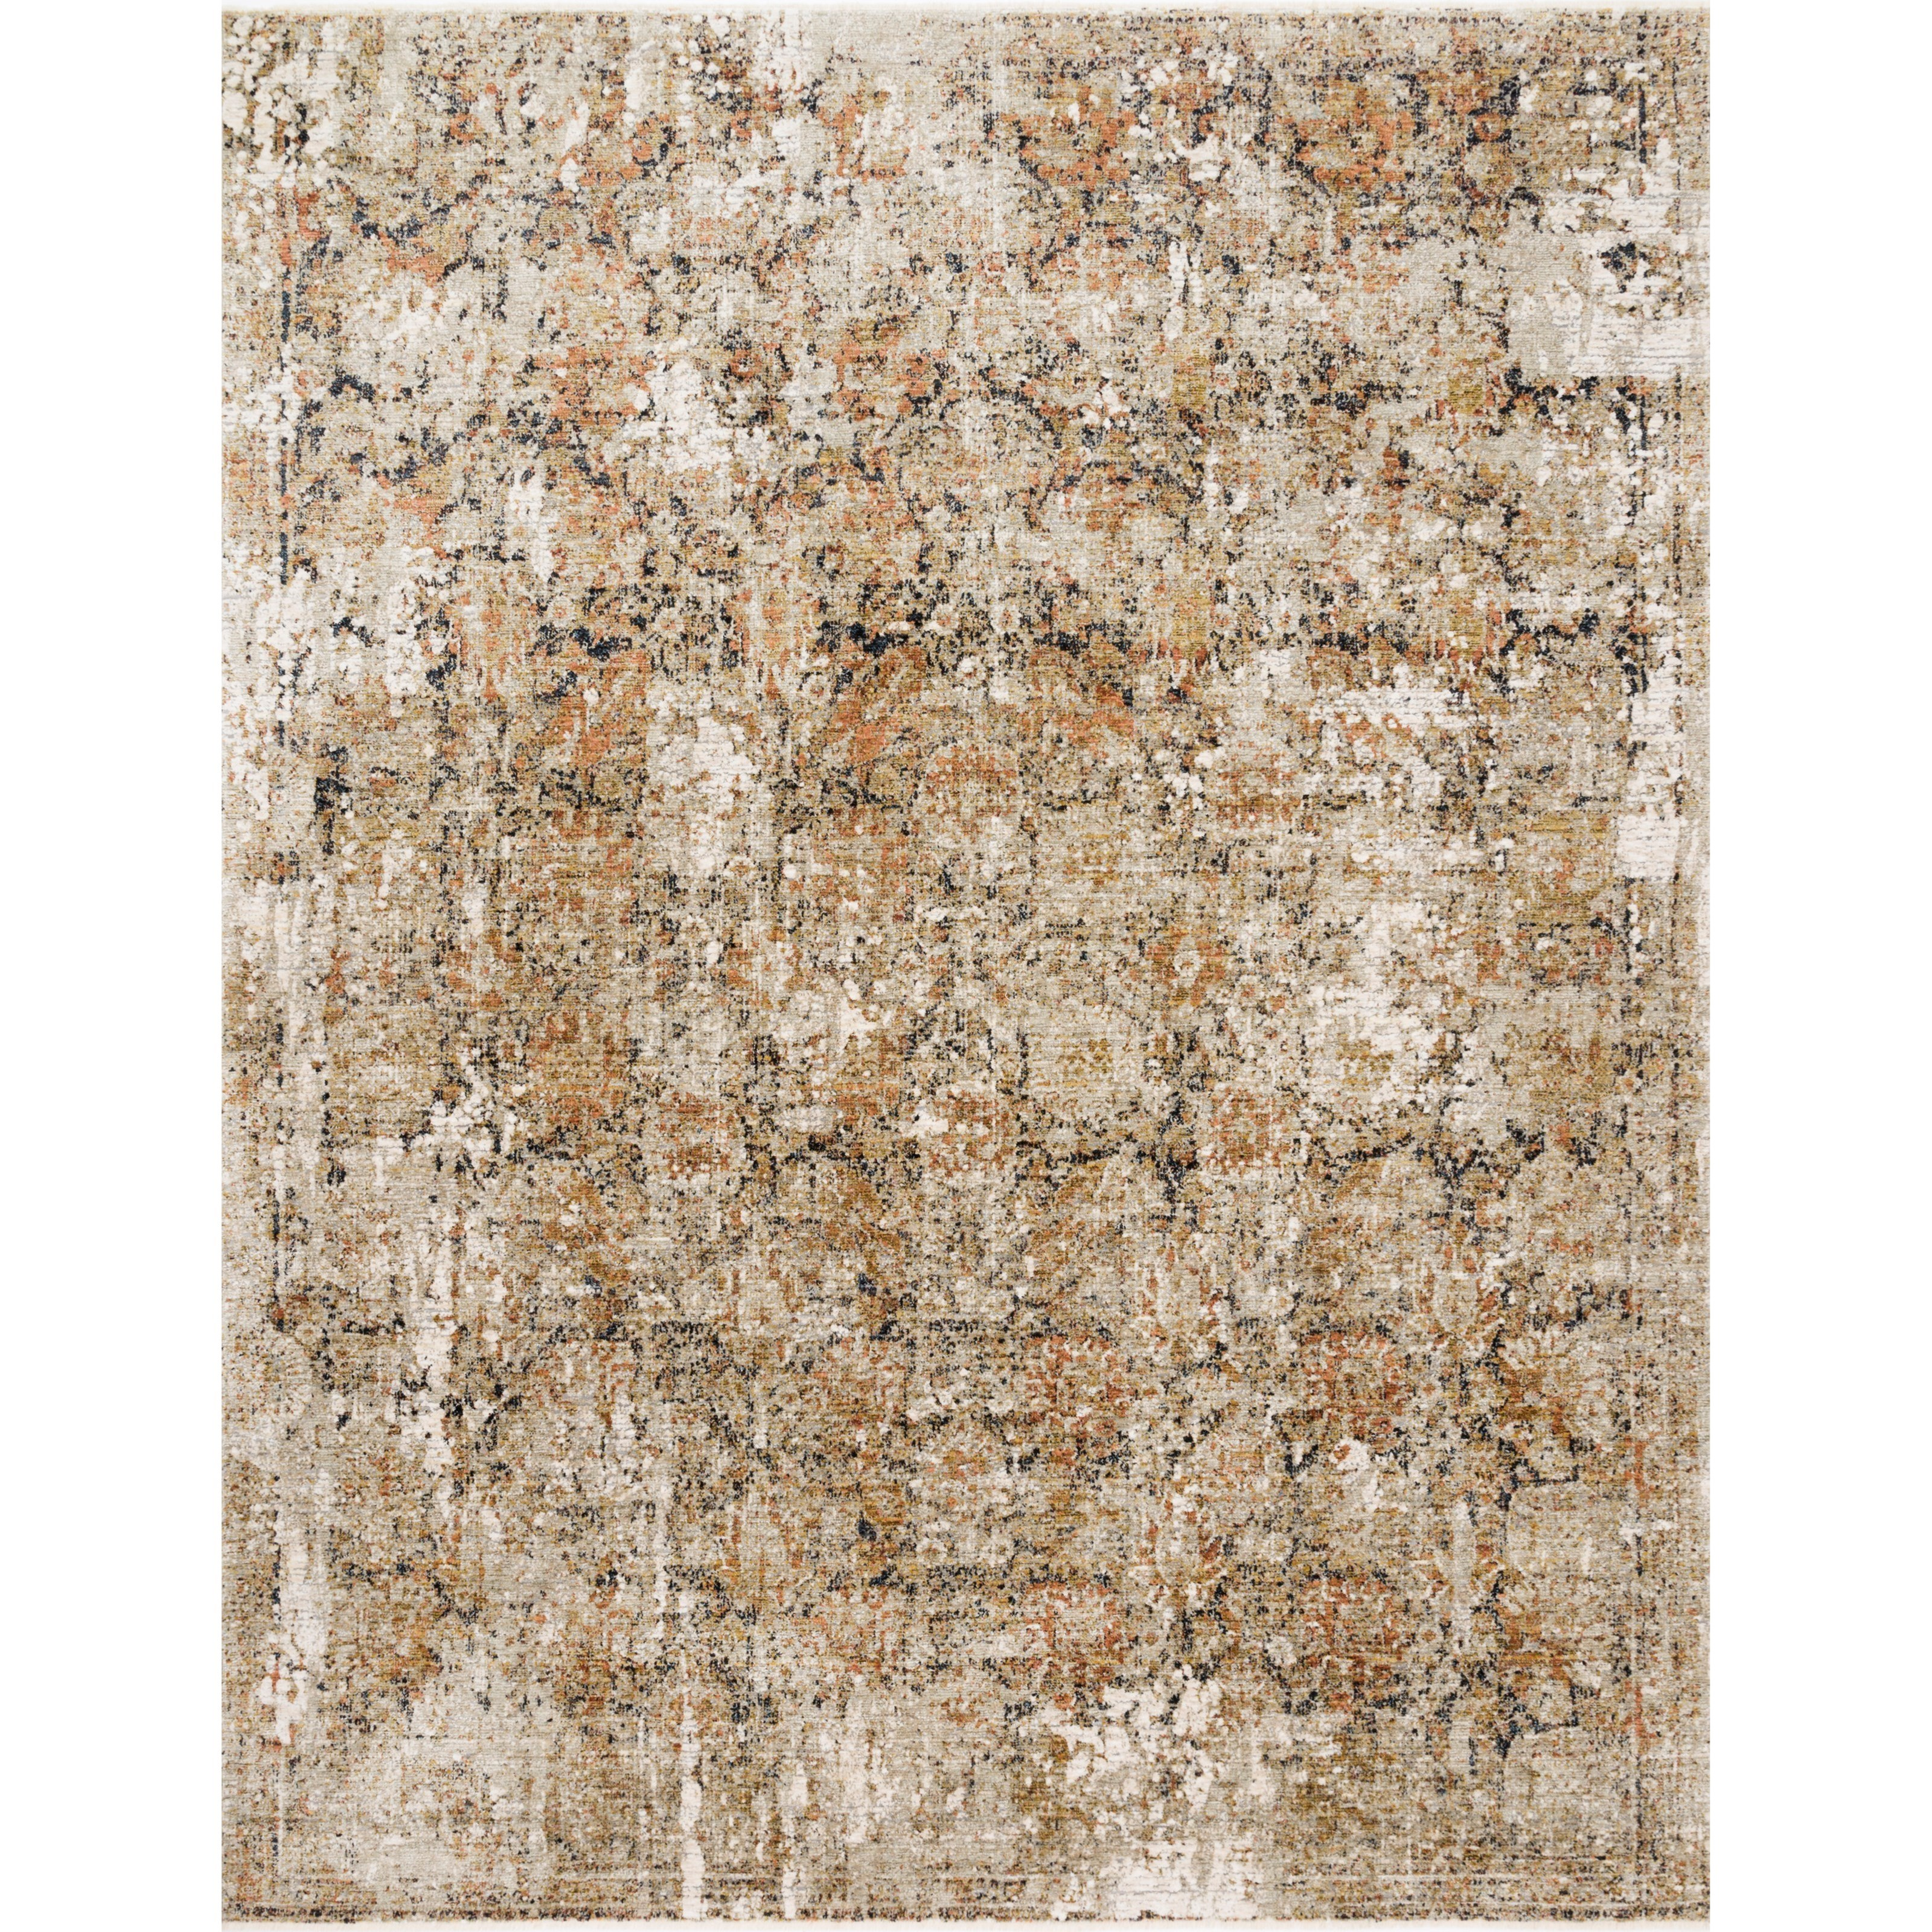 "Theia 2'10"" x 8' Taupe / Gold Rug by Loloi Rugs at Virginia Furniture Market"